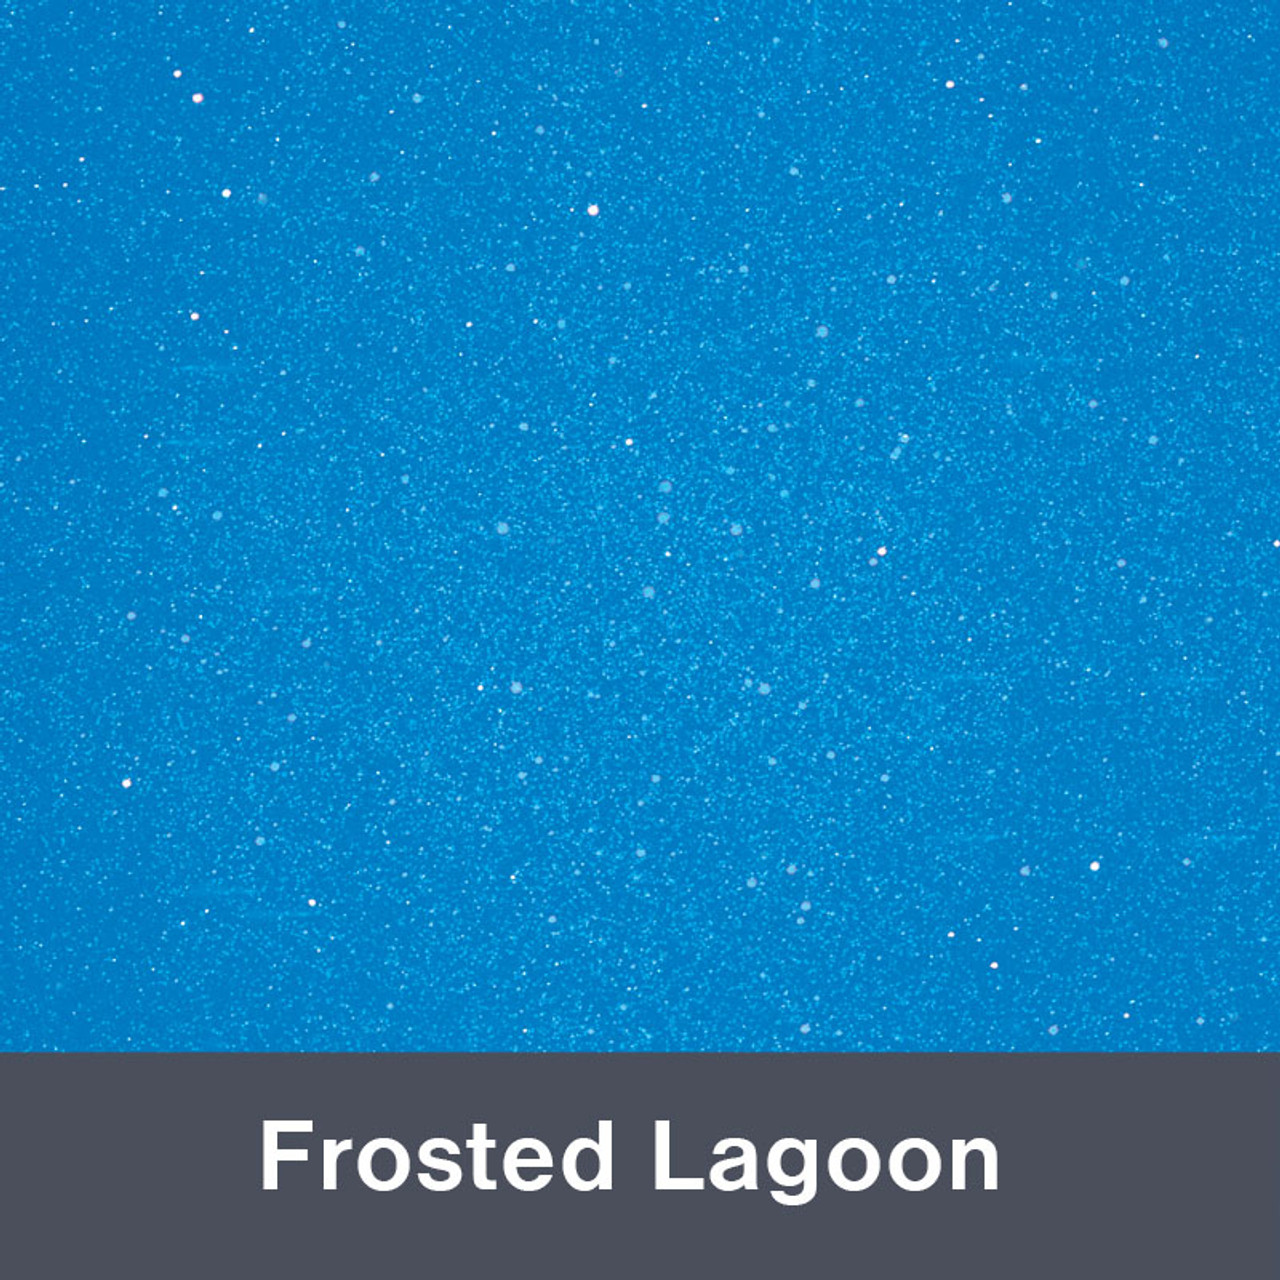 851 Frosted Lagoon Sparkle